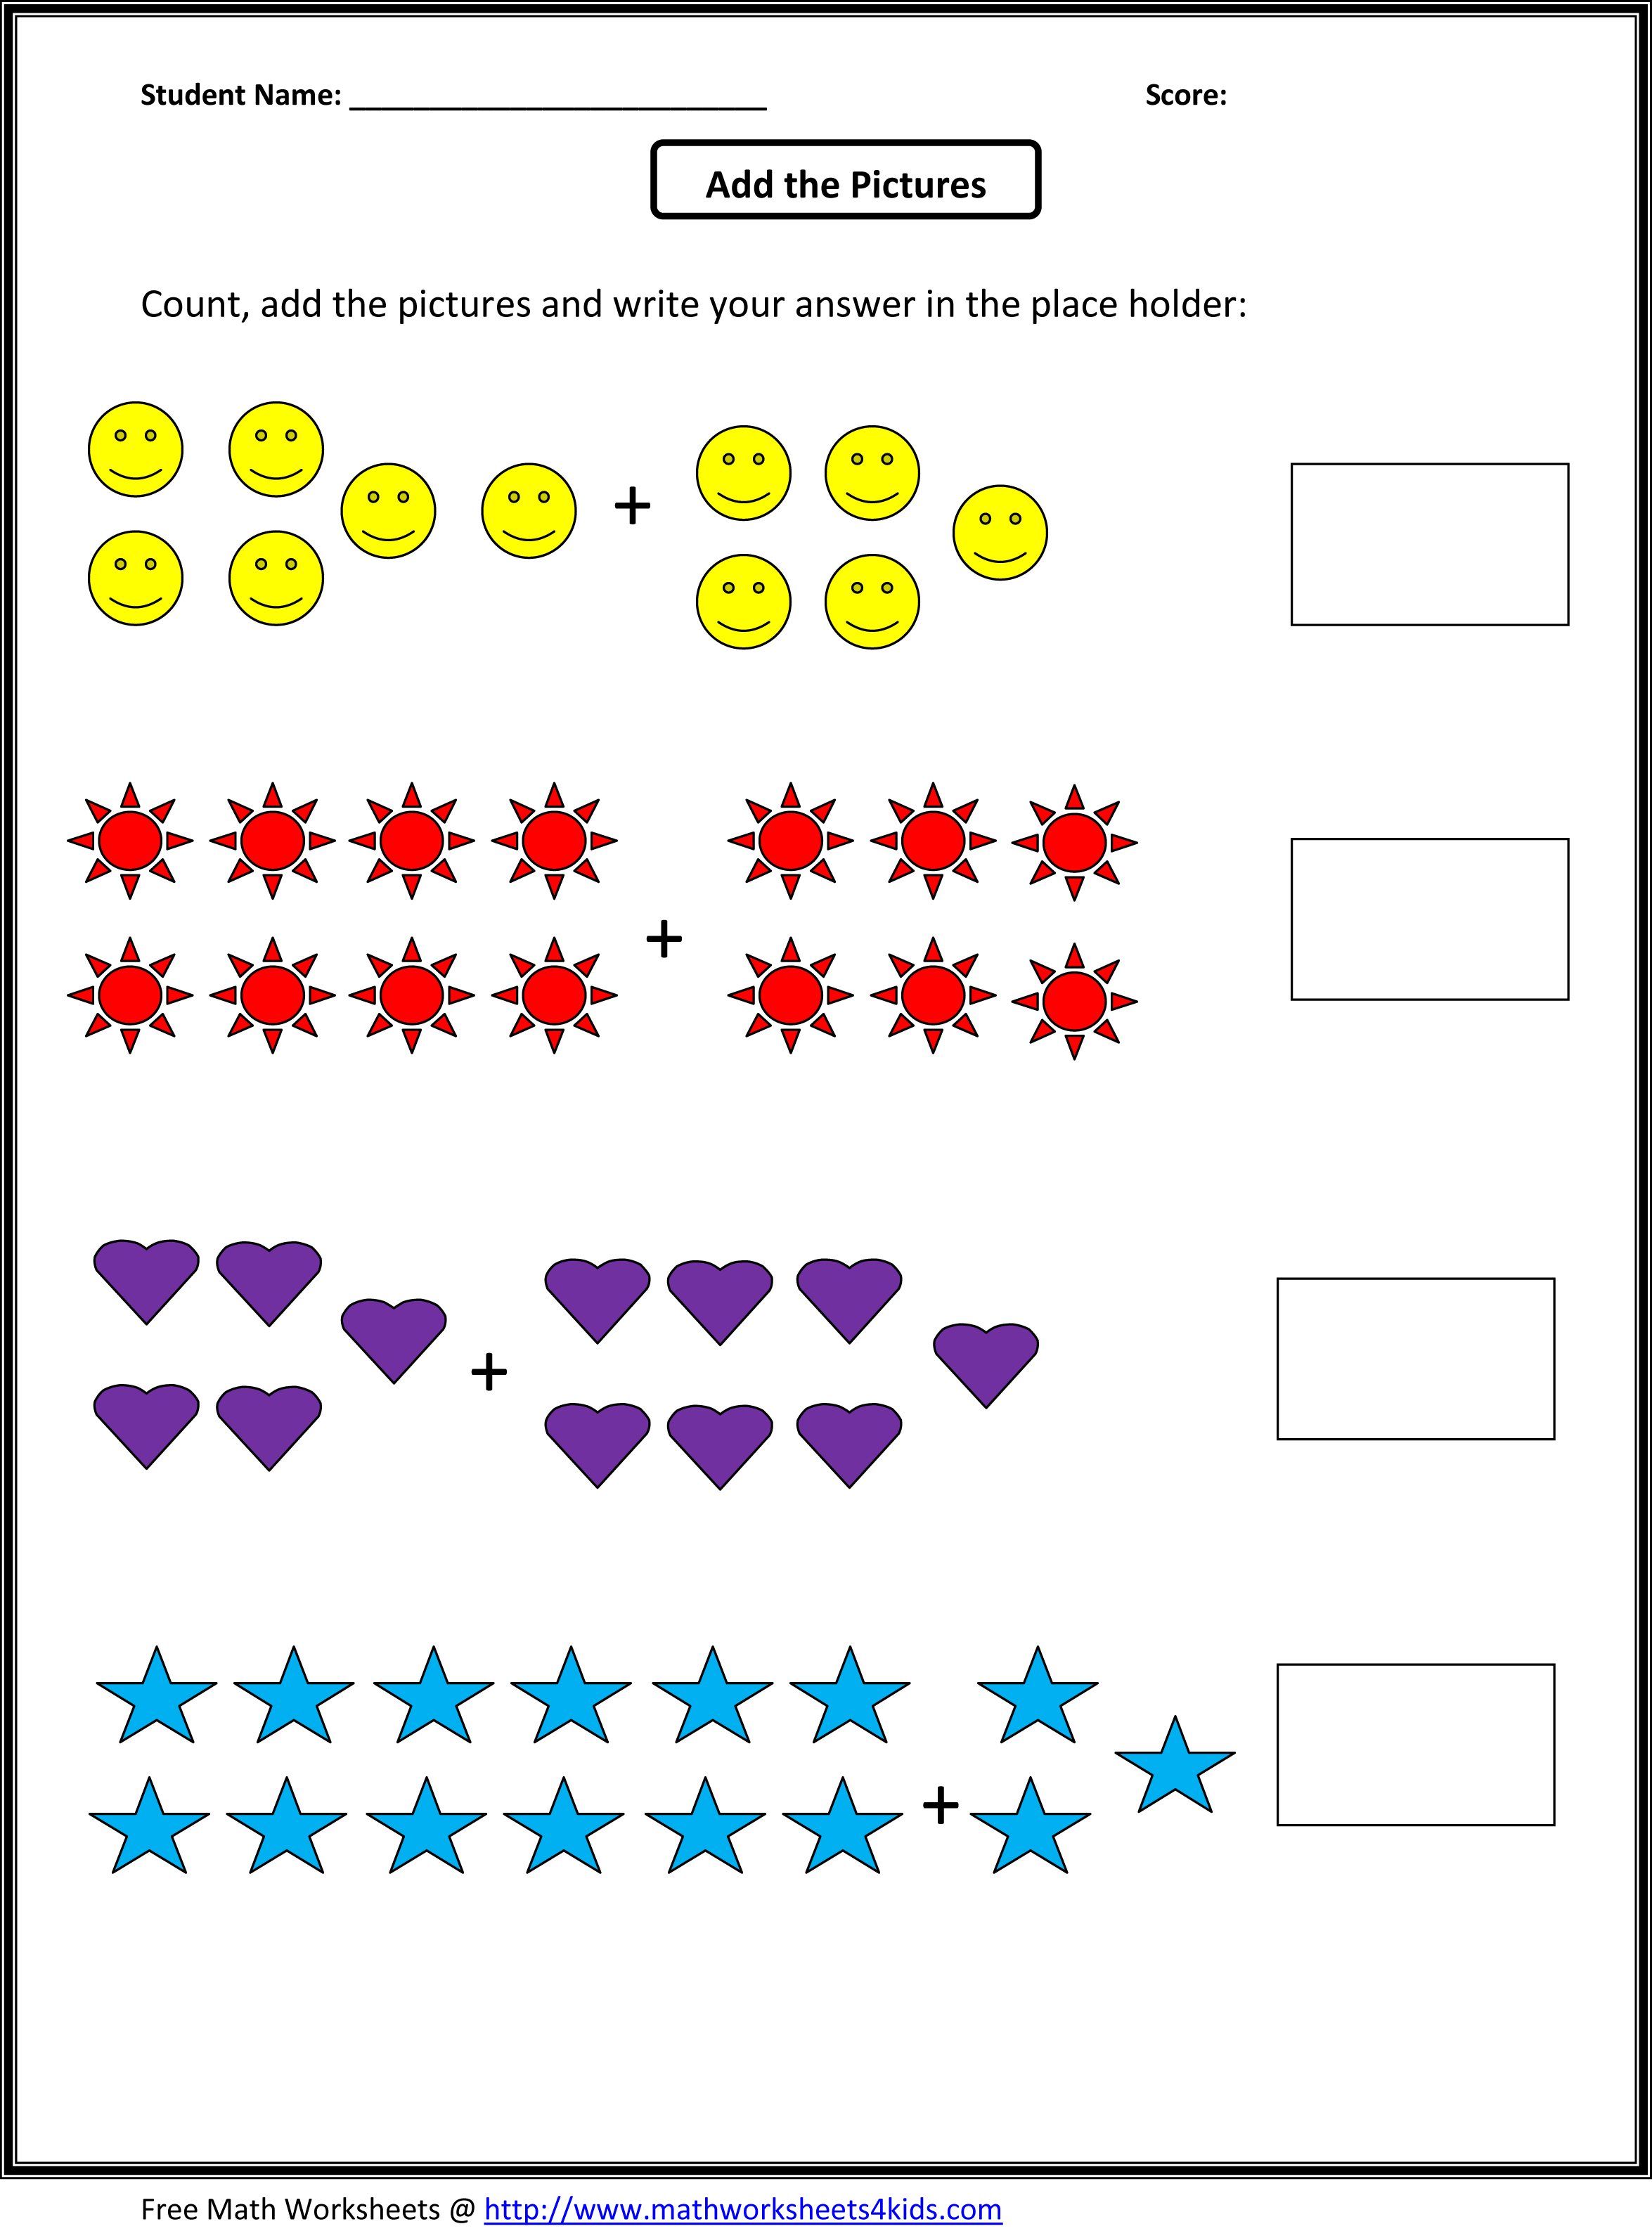 Weirdmailus  Marvelous Grade  Maths Worksheet  Reocurent With Fair Math Worksheets For St Grade Free  Reocurent With Appealing Rationalizing The Denominator Worksheet Also The Law Of Sines Worksheet In Addition Add And Subtract Fractions Worksheet And Isosceles And Equilateral Triangles Worksheet As Well As Mothers Day Worksheets Additionally Y Mx B Worksheets From Reocurentcom With Weirdmailus  Fair Grade  Maths Worksheet  Reocurent With Appealing Math Worksheets For St Grade Free  Reocurent And Marvelous Rationalizing The Denominator Worksheet Also The Law Of Sines Worksheet In Addition Add And Subtract Fractions Worksheet From Reocurentcom